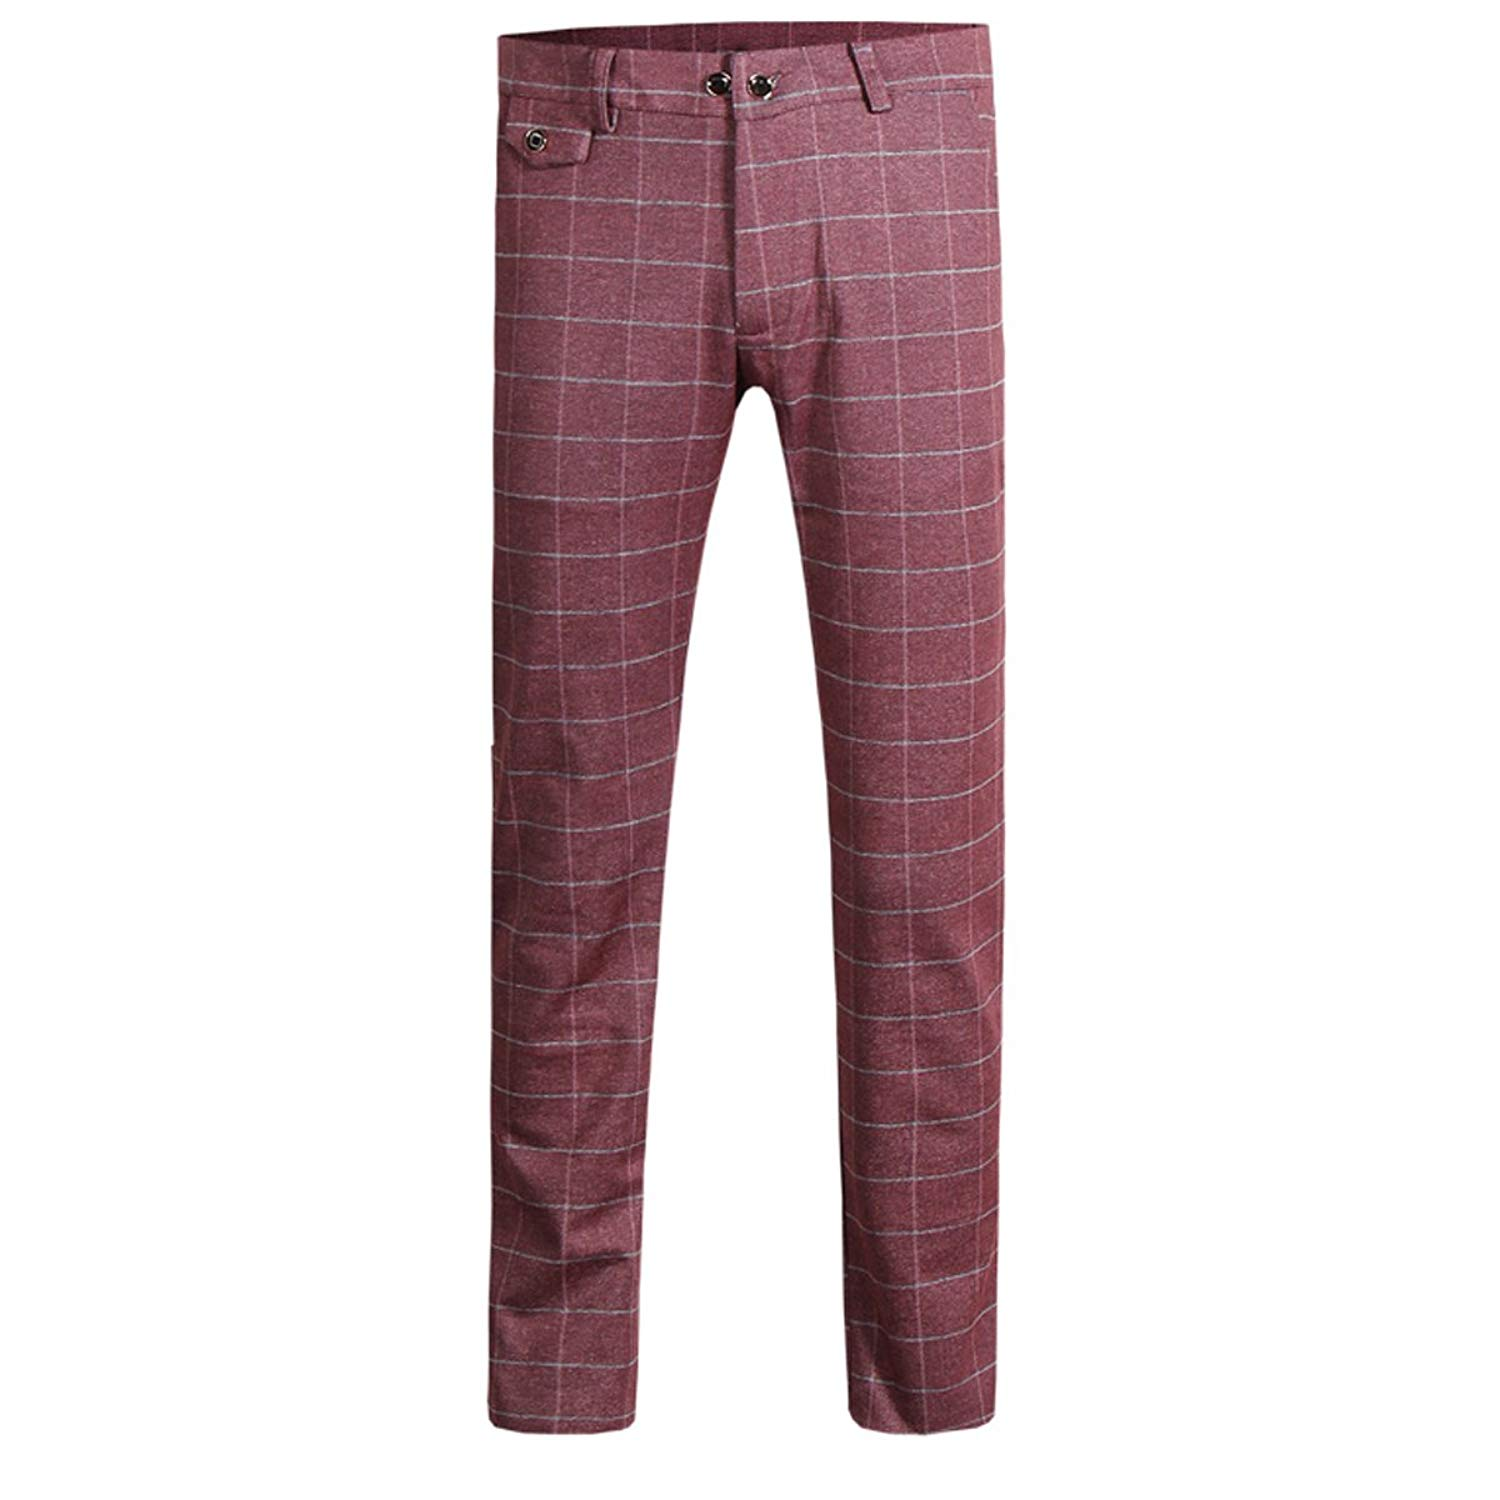 829053d8e Get Quotations · Cloudstyle Mens Pants Slim Fit Flat Front Plaid Dress  Tapered Suit Pants